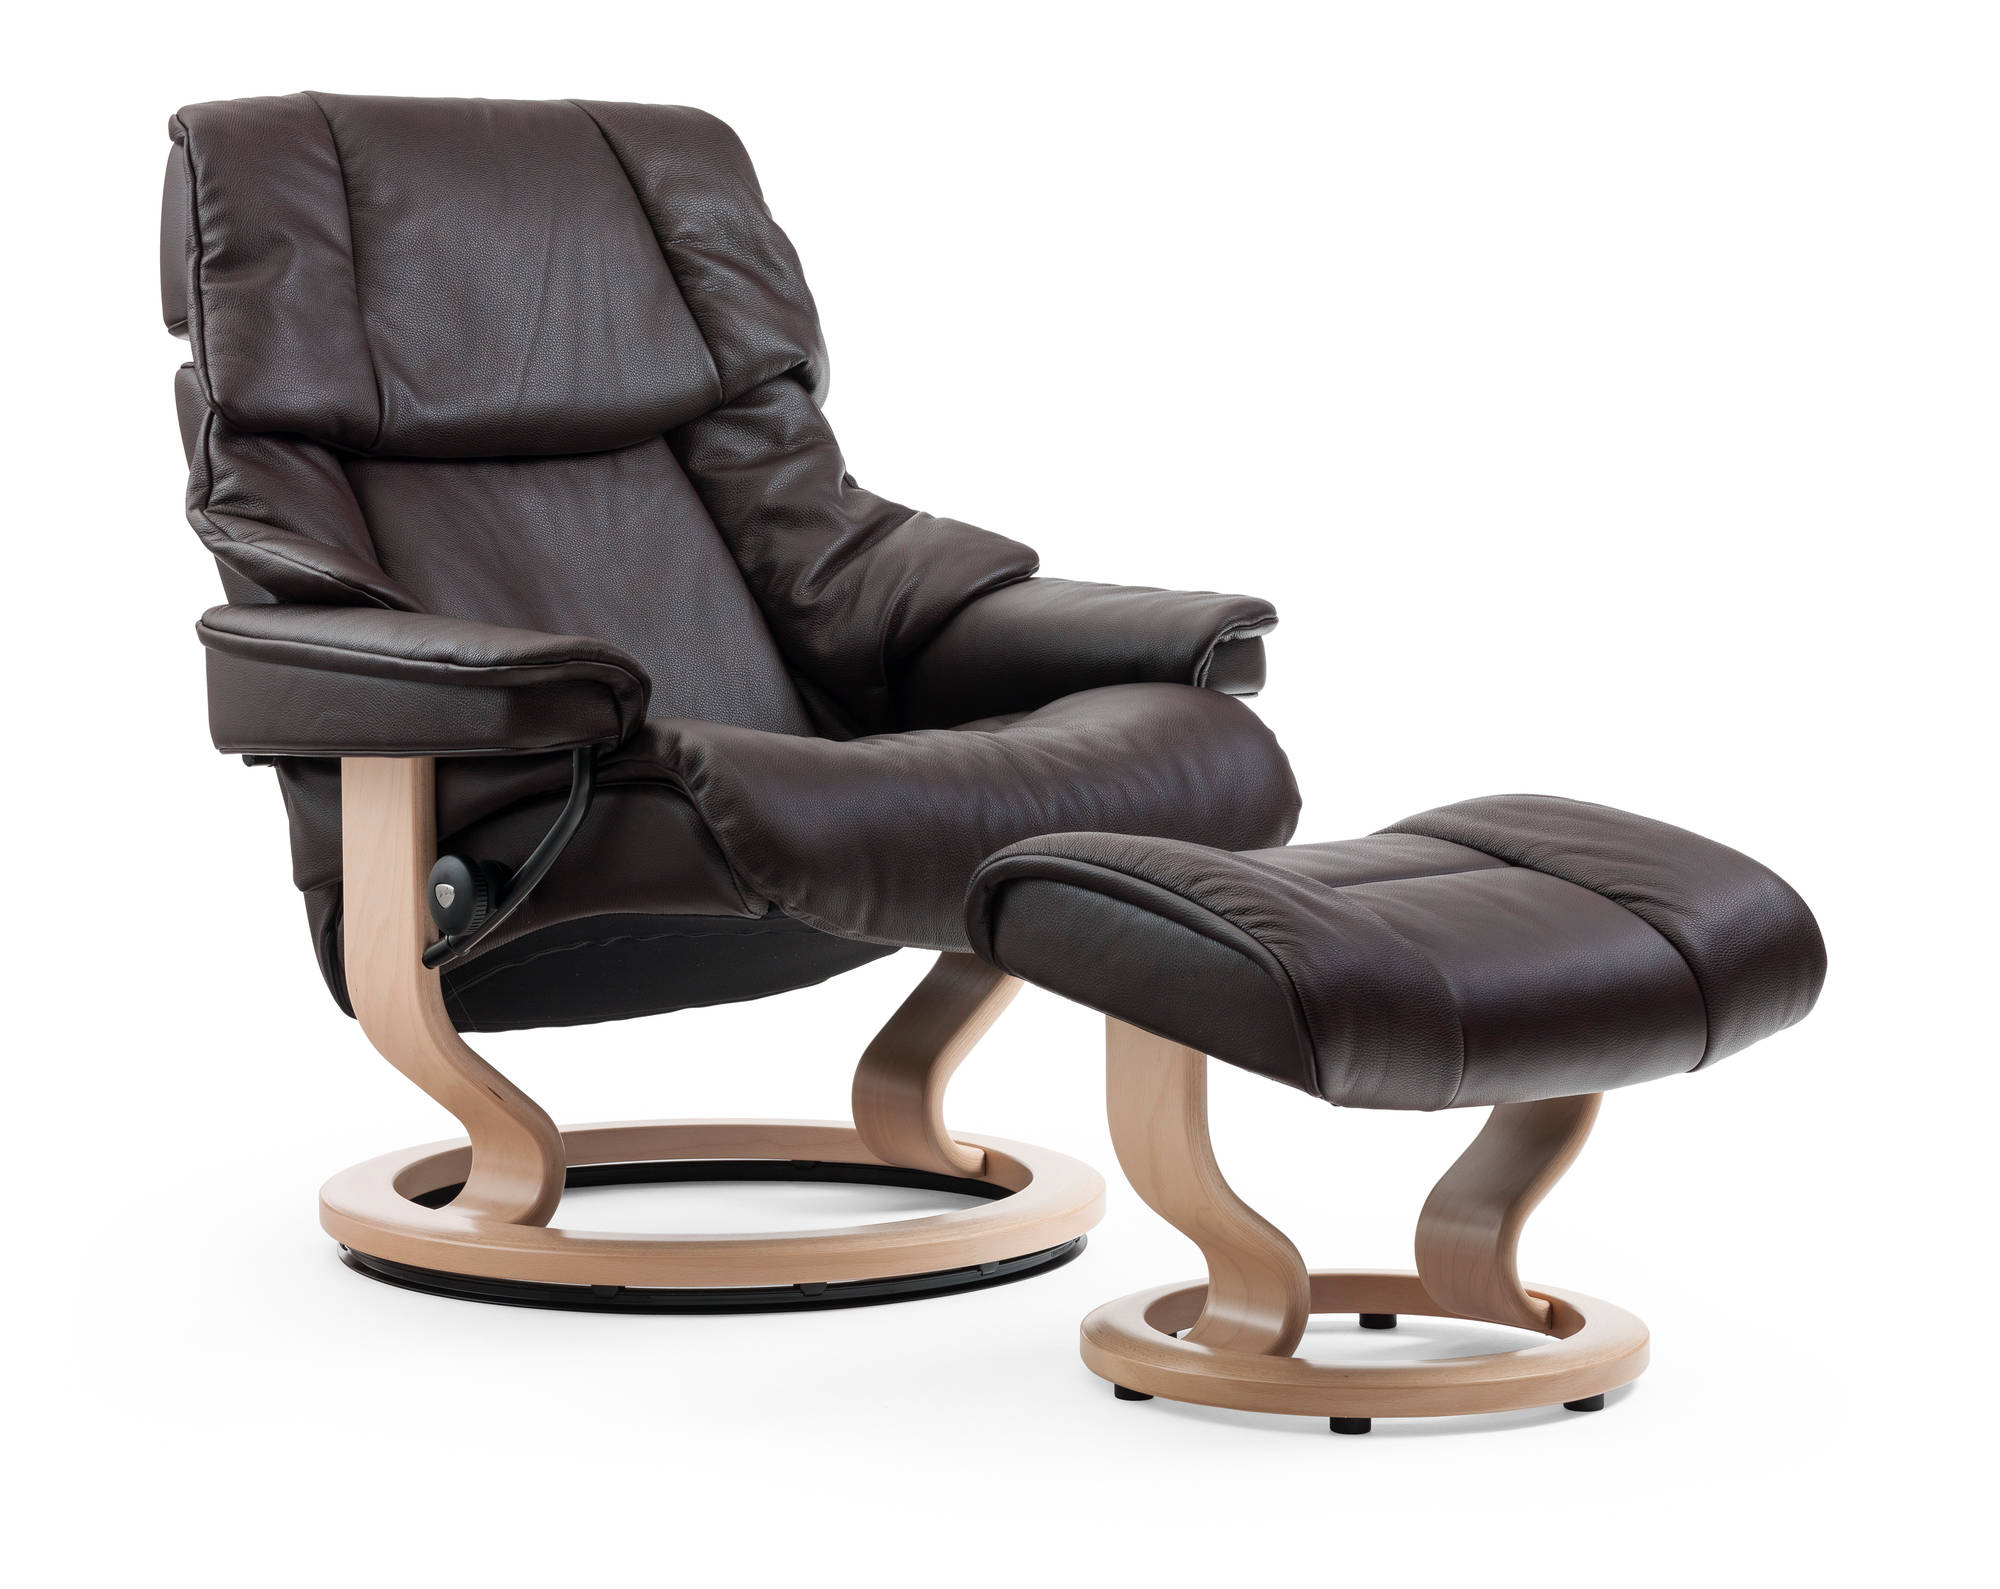 New Cori Leather from Ekornes on Vegas Recliner.